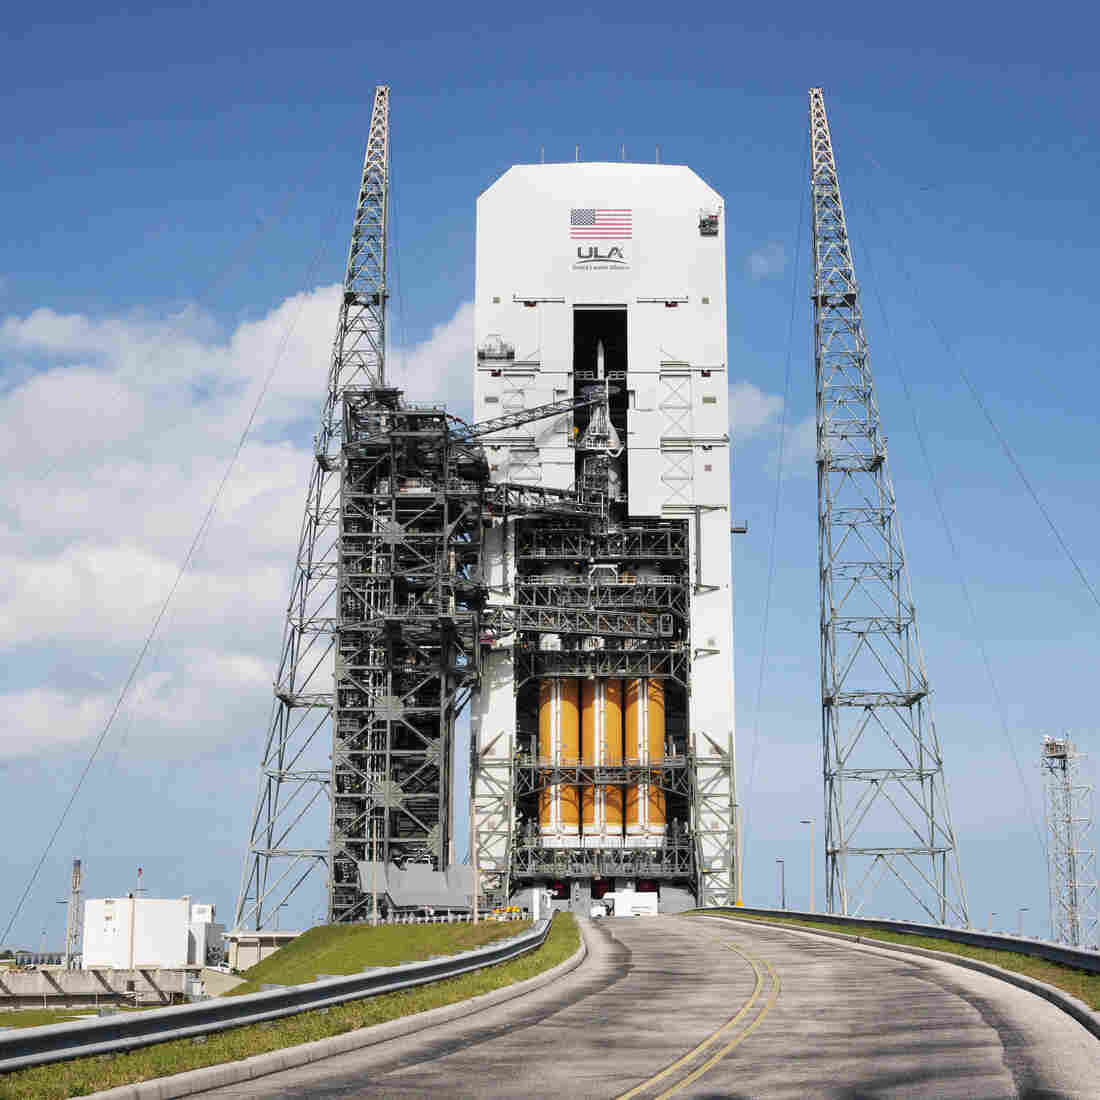 The Orion capsule is poised to make its first test flight Thursday. If all goes as planned, the unmanned vehicle will orbit Earth twice before splashing into the Pacific Ocean.